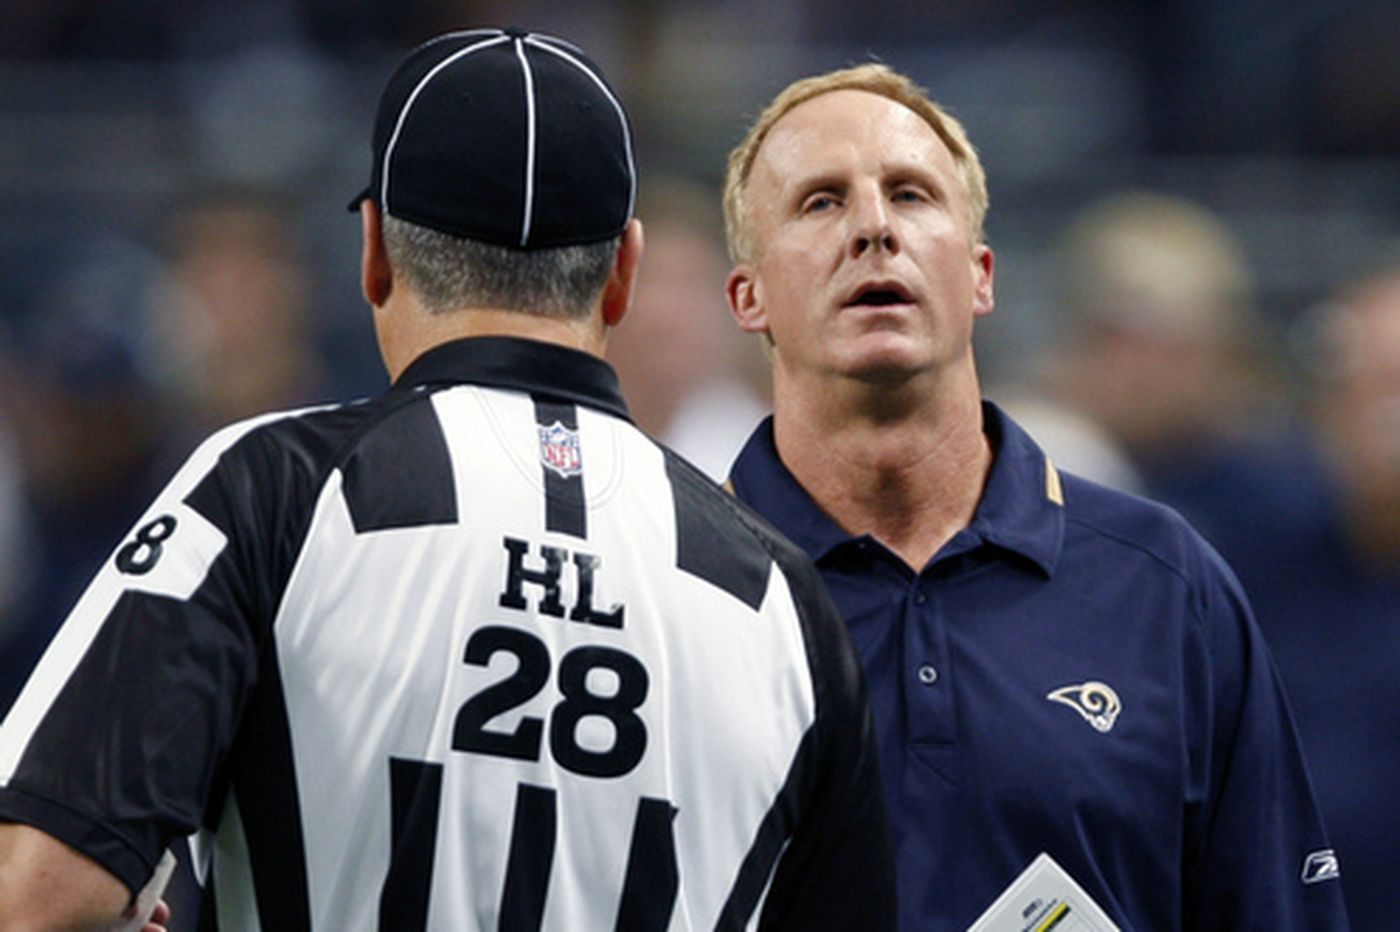 Holt says ref checked TV before making call